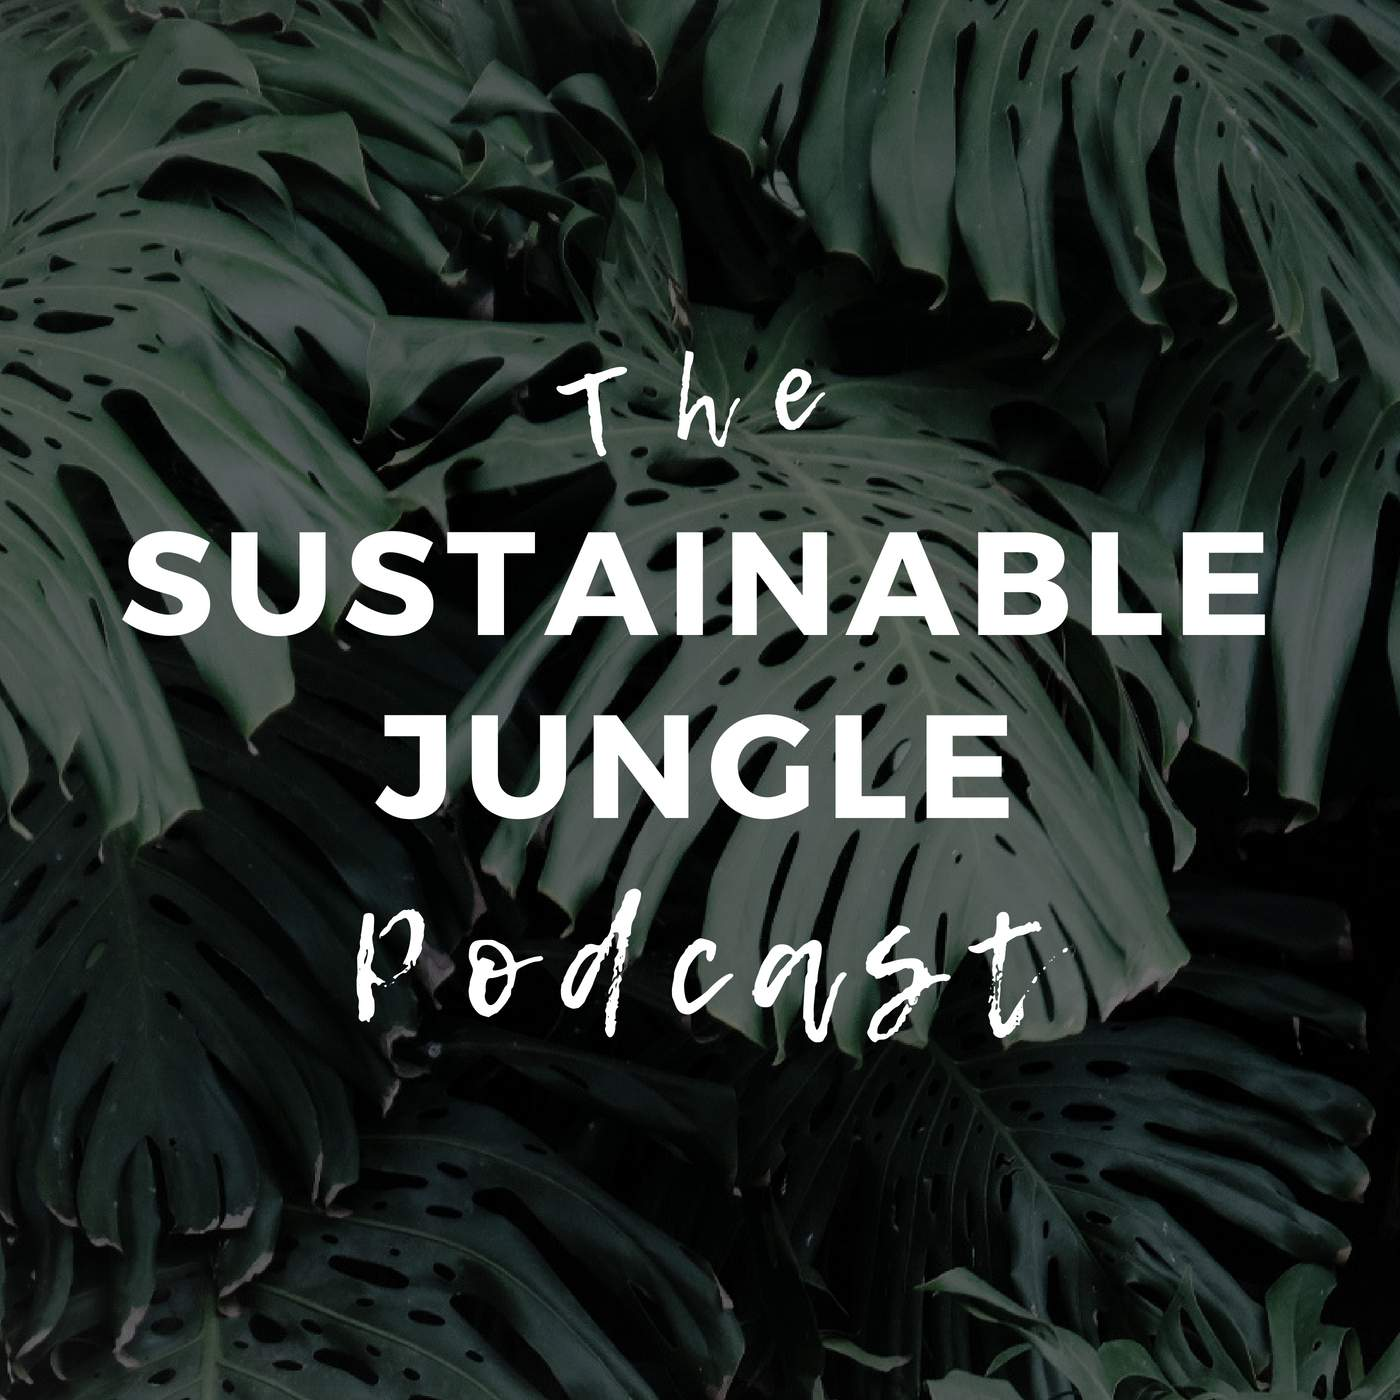 The Sustainable Jungle Podcast